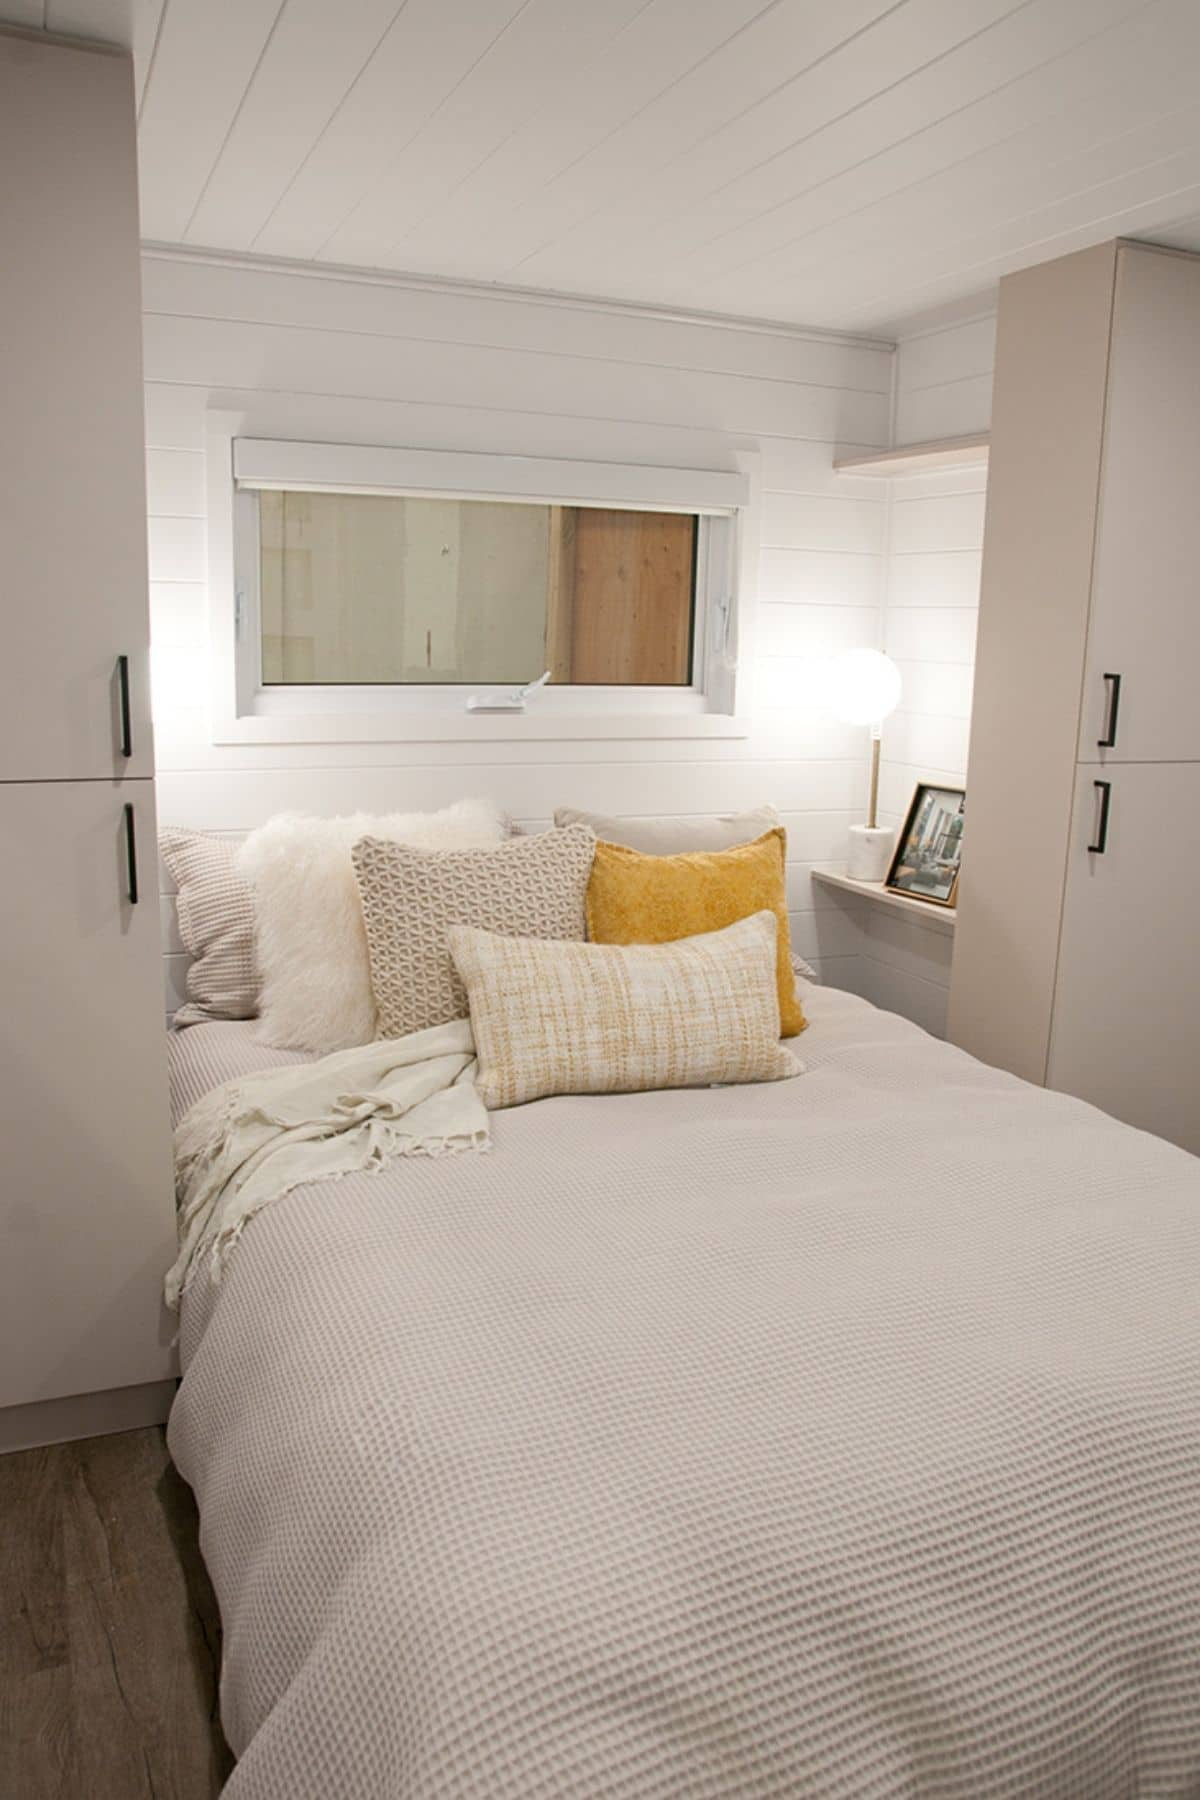 White linens on bed between white cabinets in tiny house bedroom